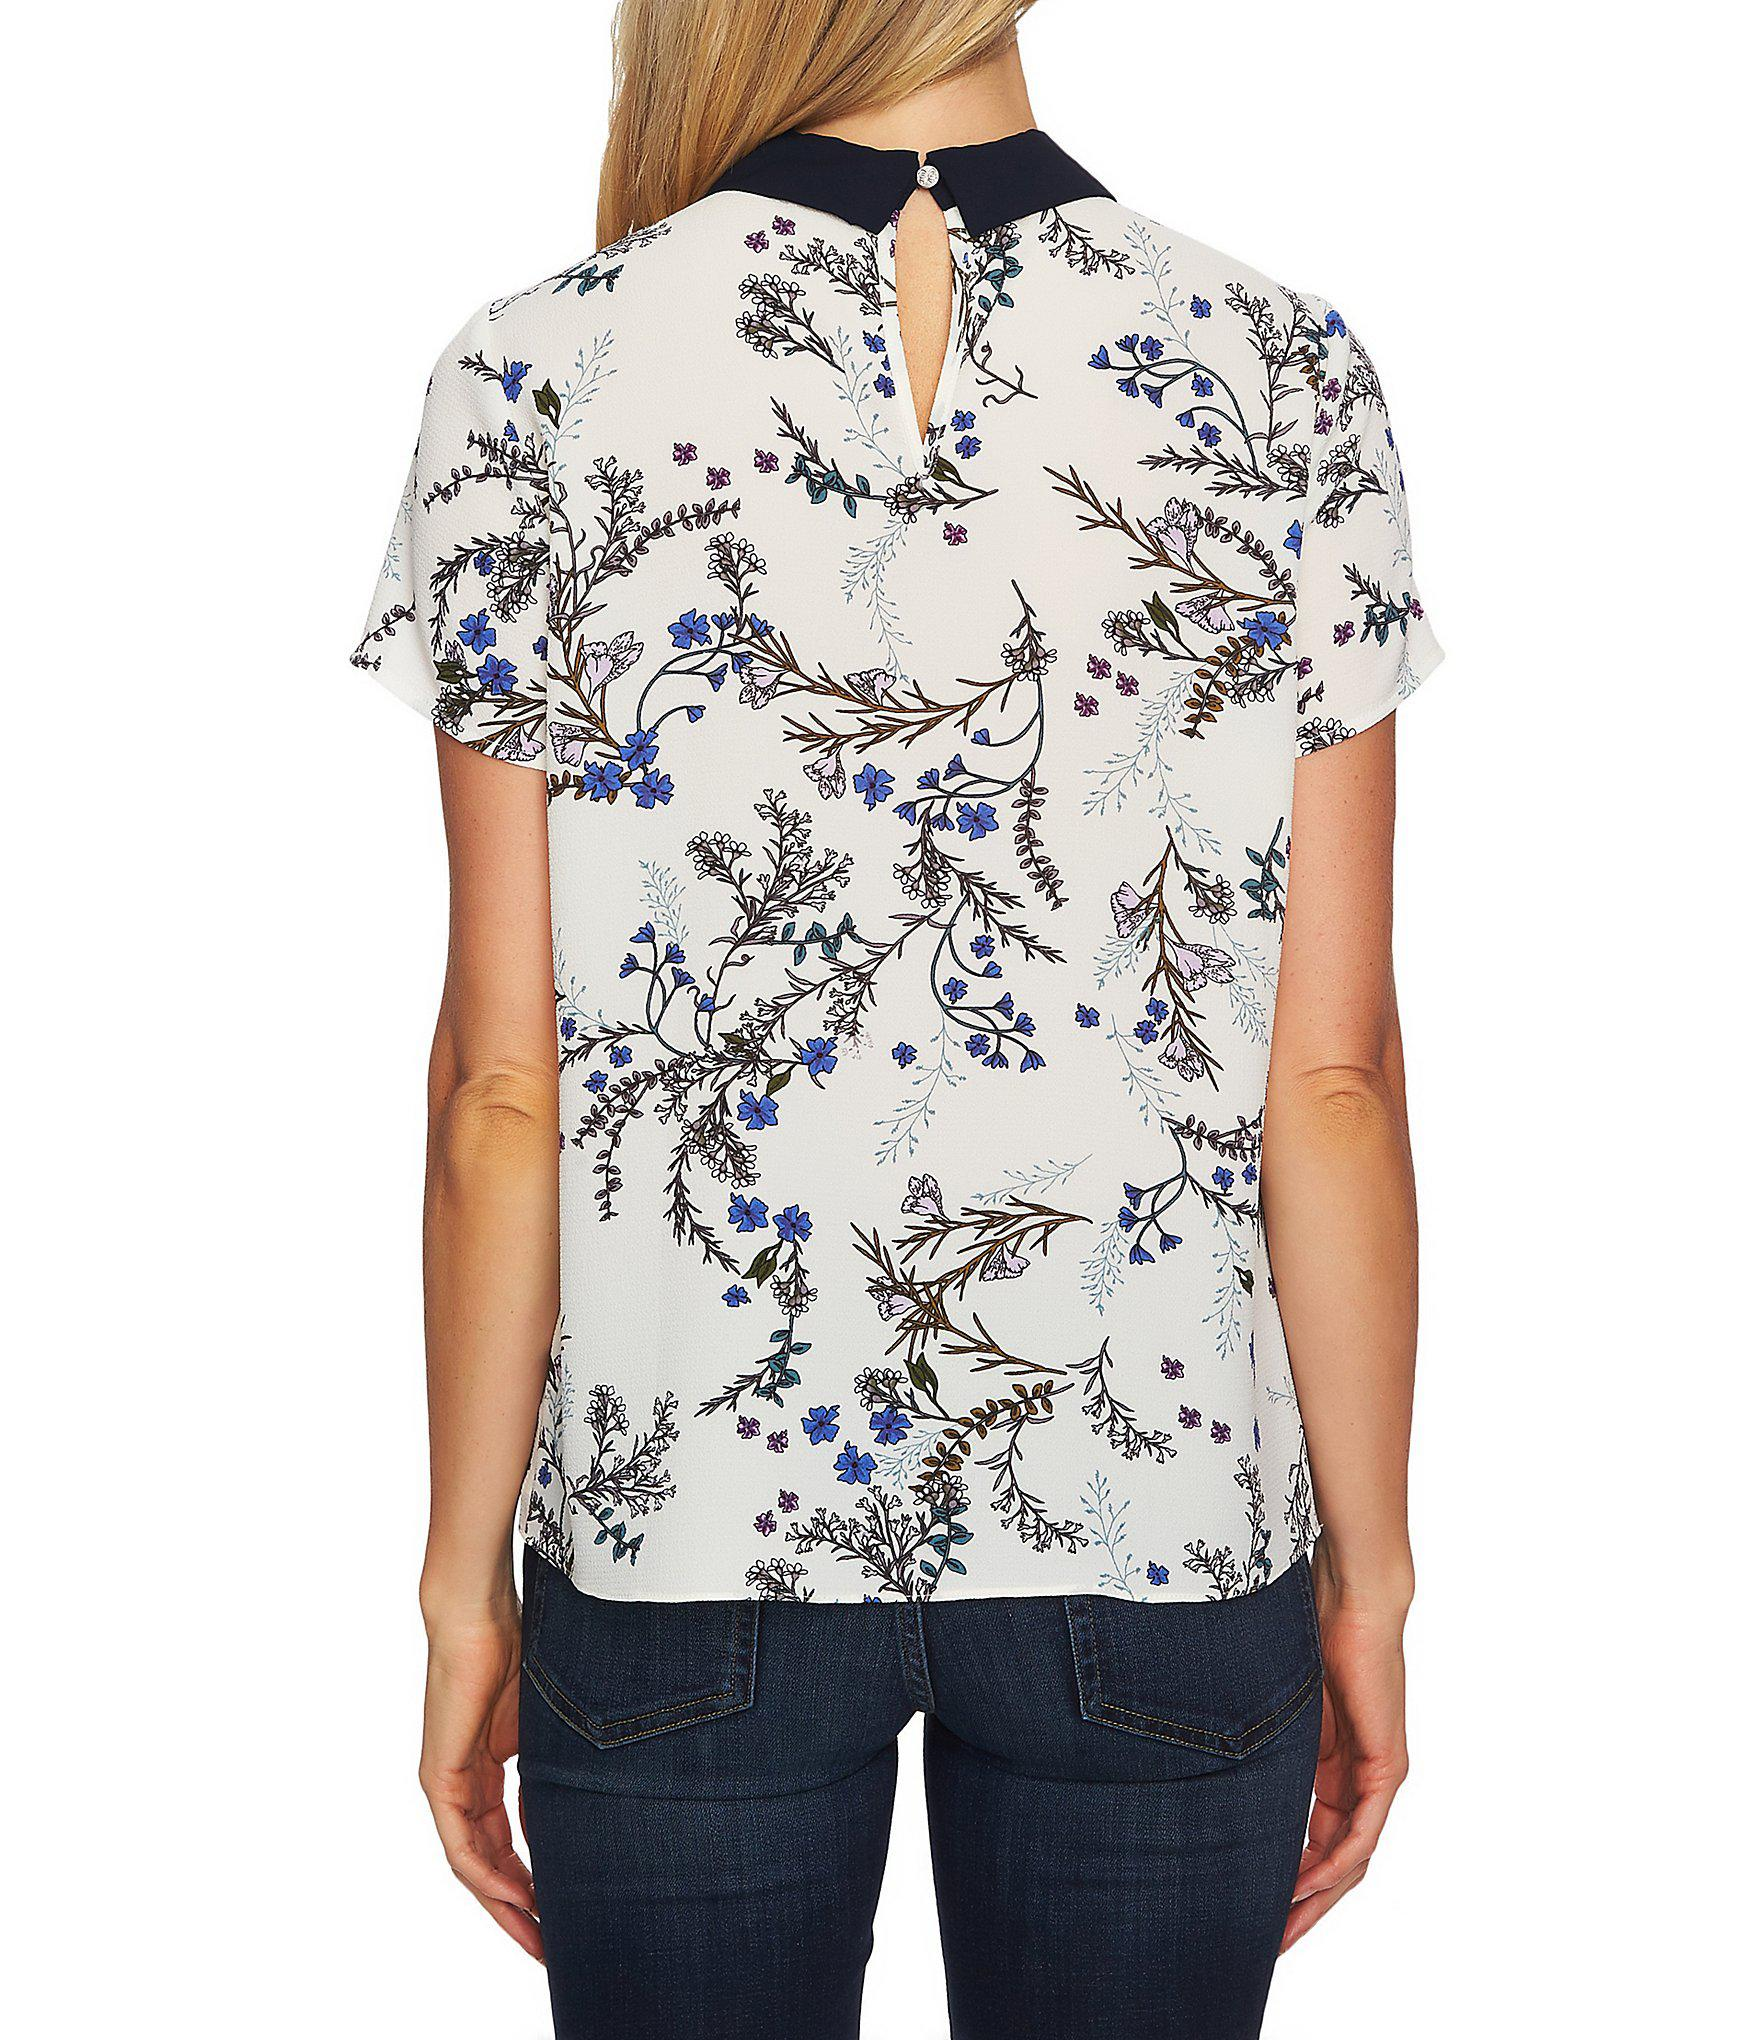 998efd65e67d66 Lyst - Cece Floral Print Peter Pan Collar Blouse in White